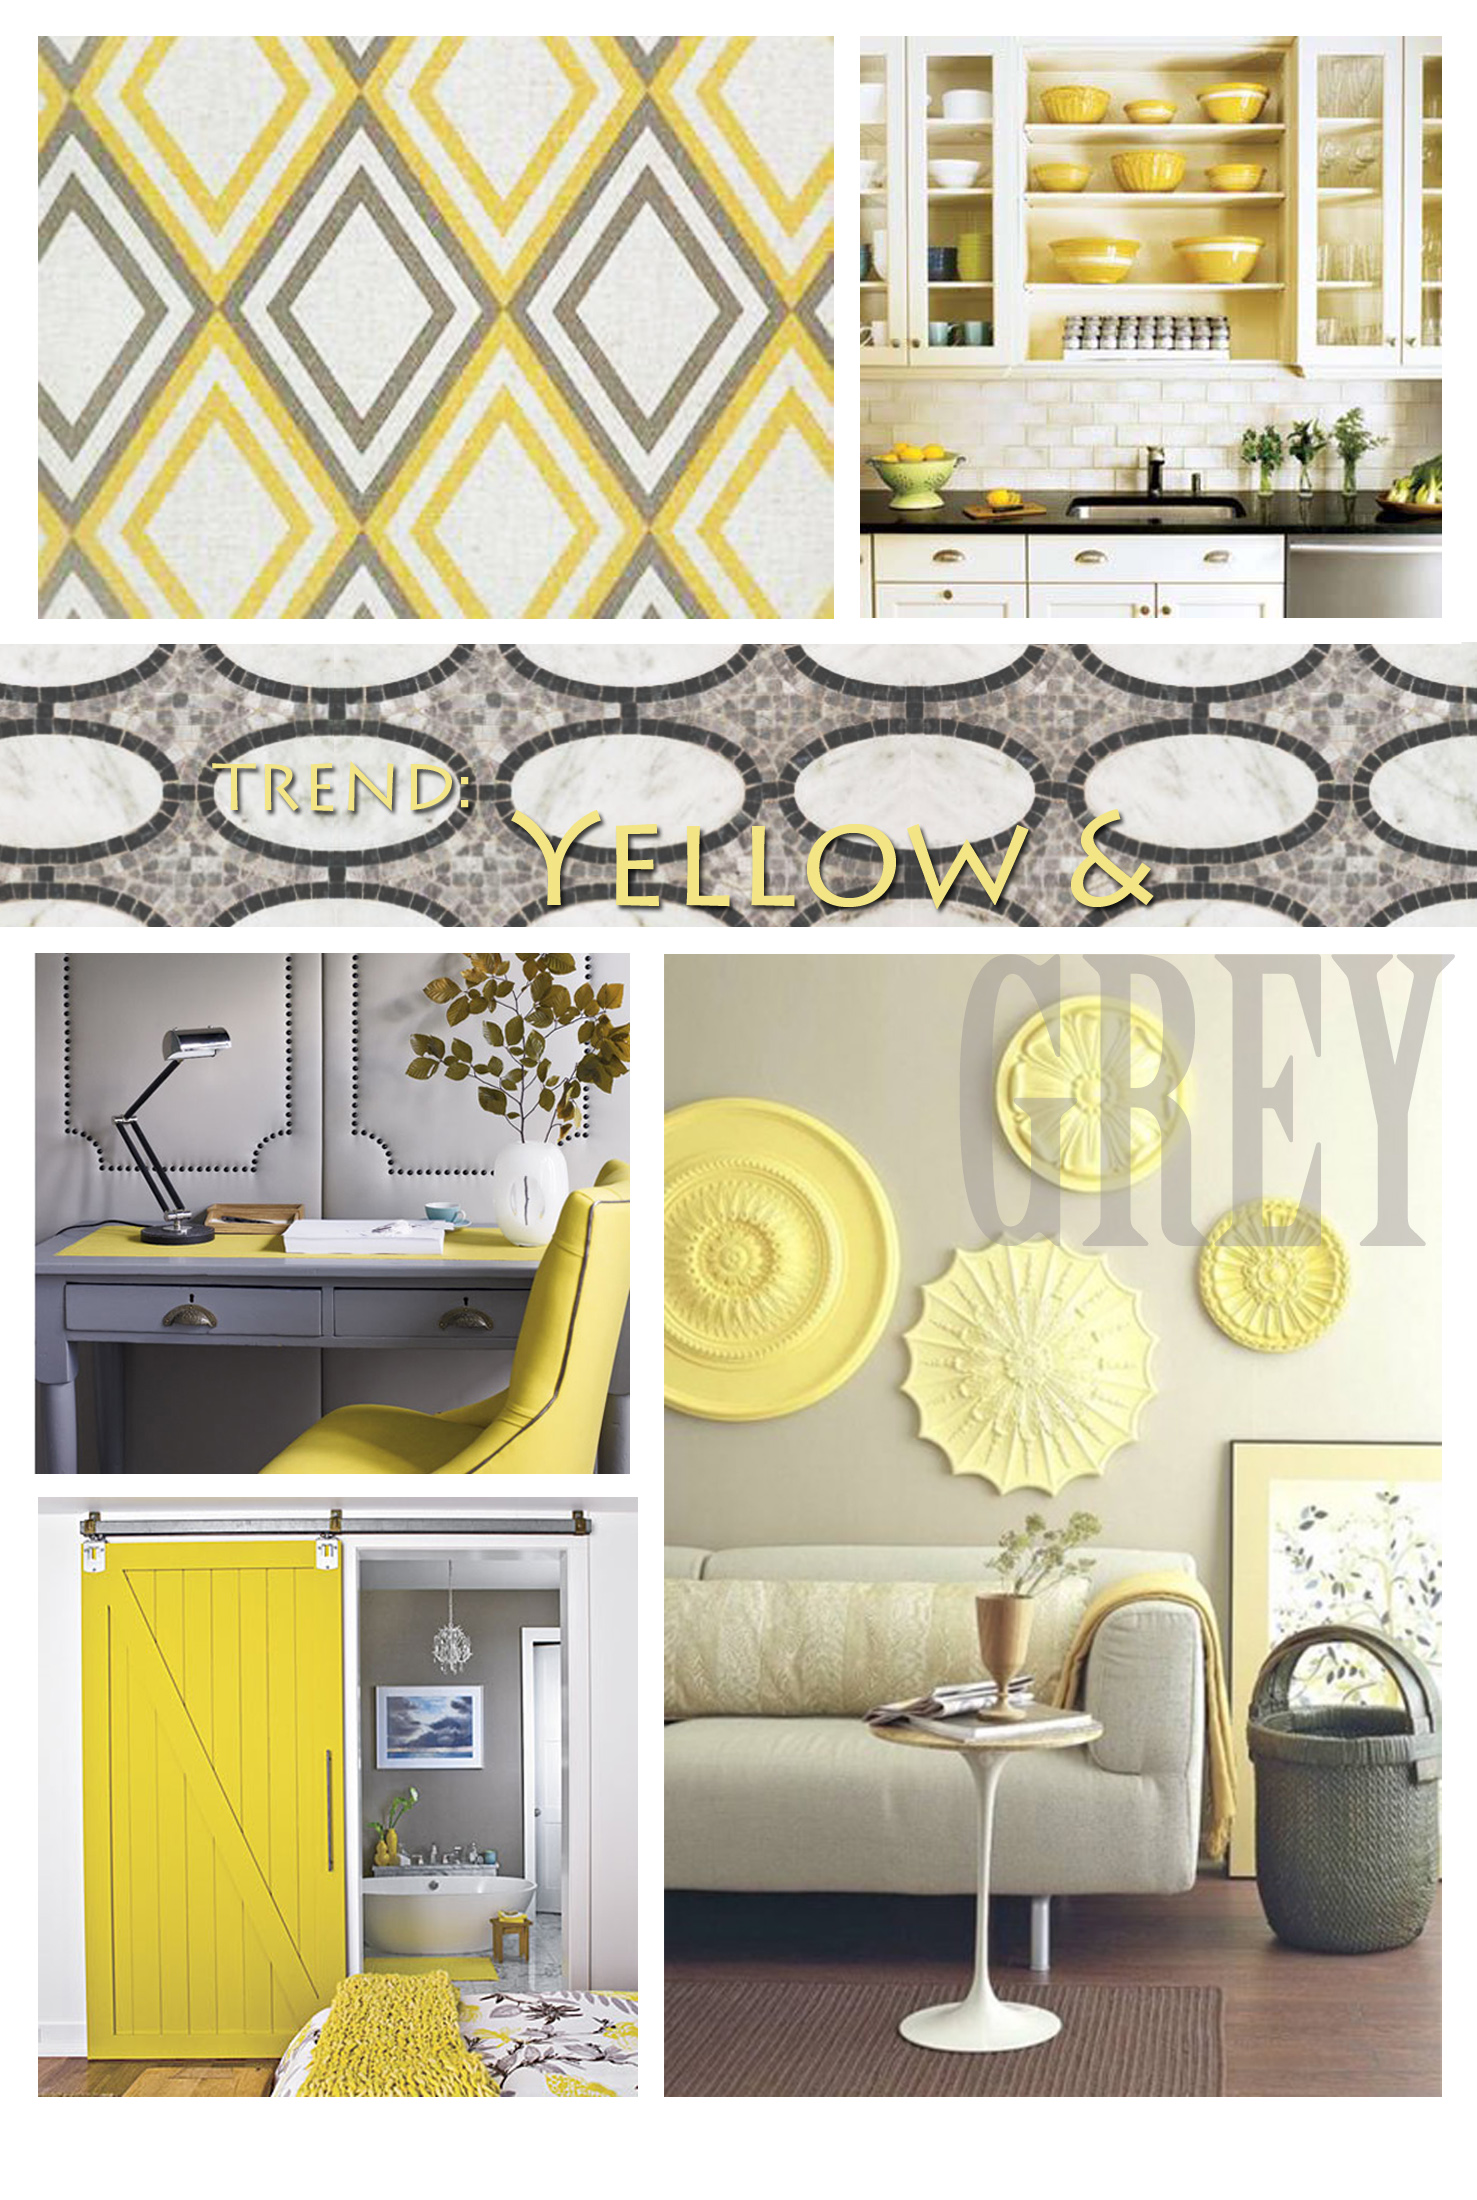 Trend yellow and grey apartments i like blog for Yellow and gray living room ideas